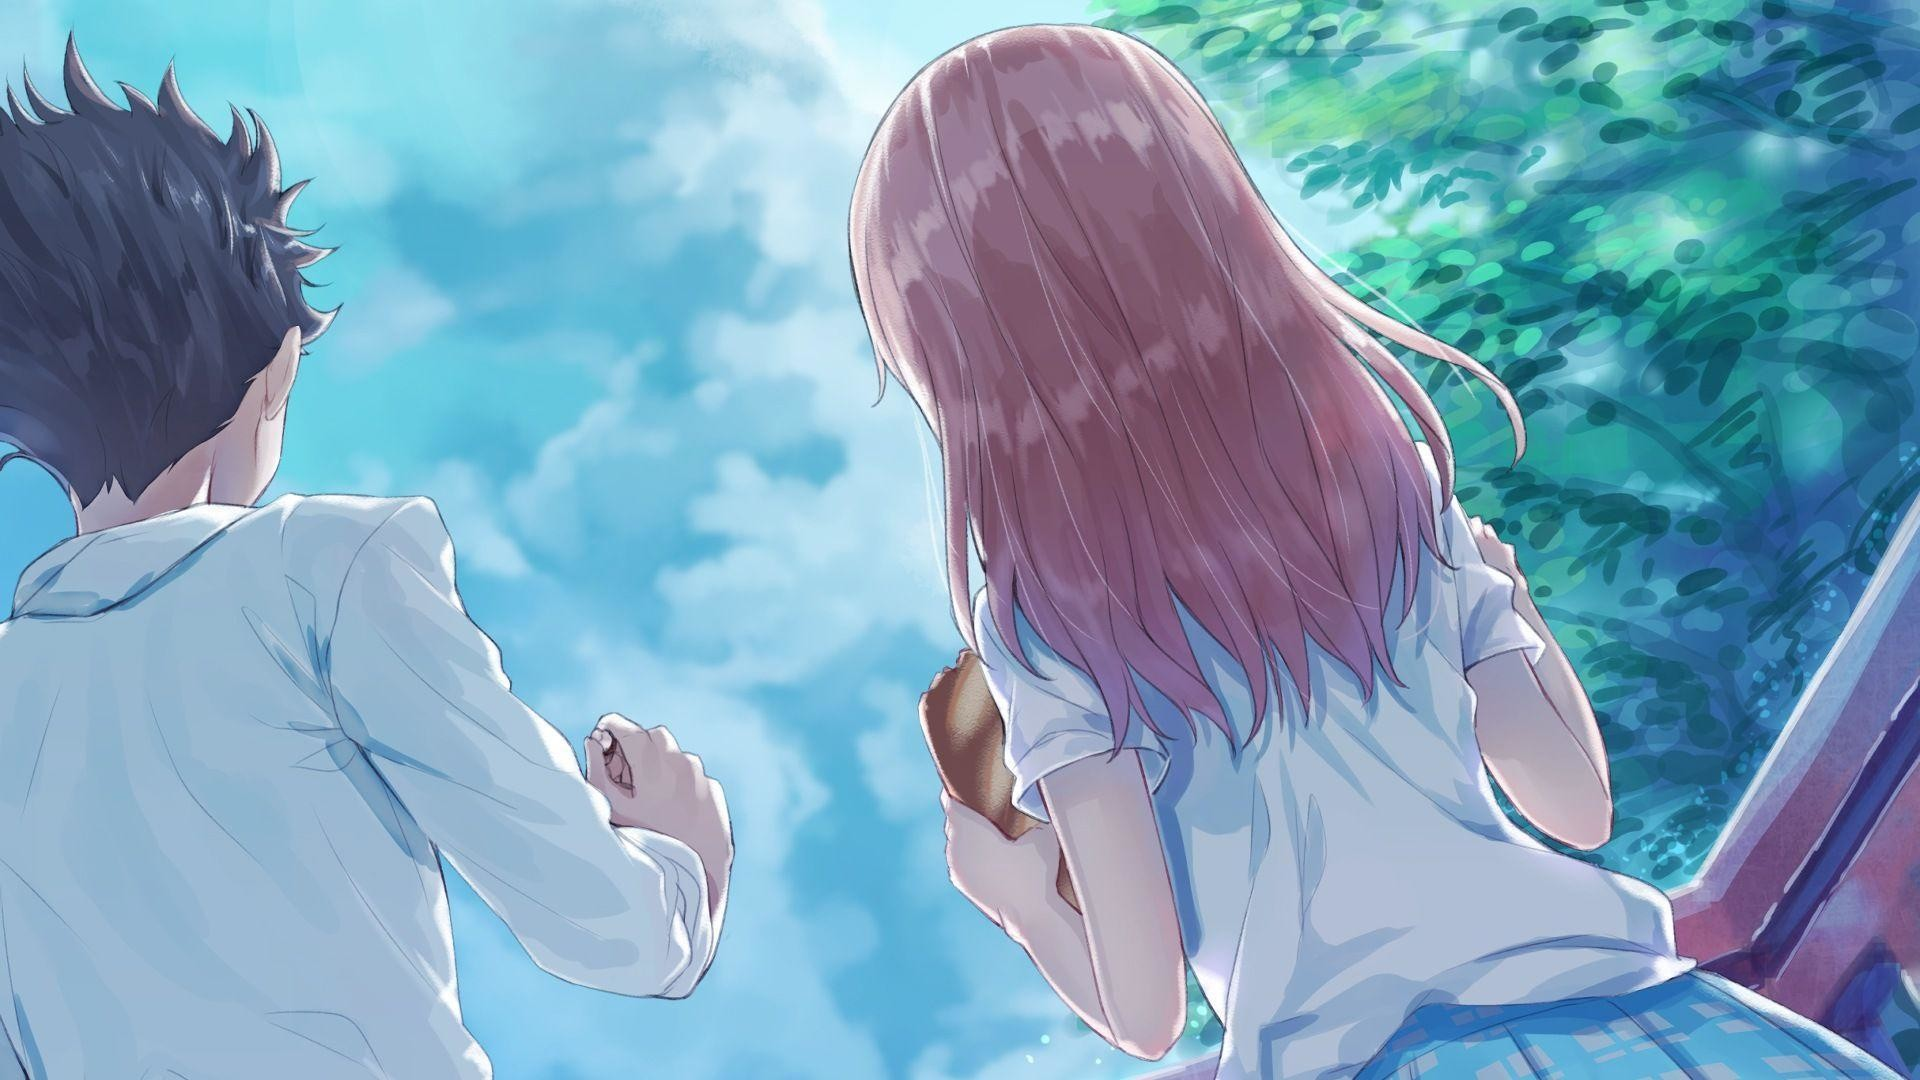 Koe No Katachi Hd Posted By Michelle Walker